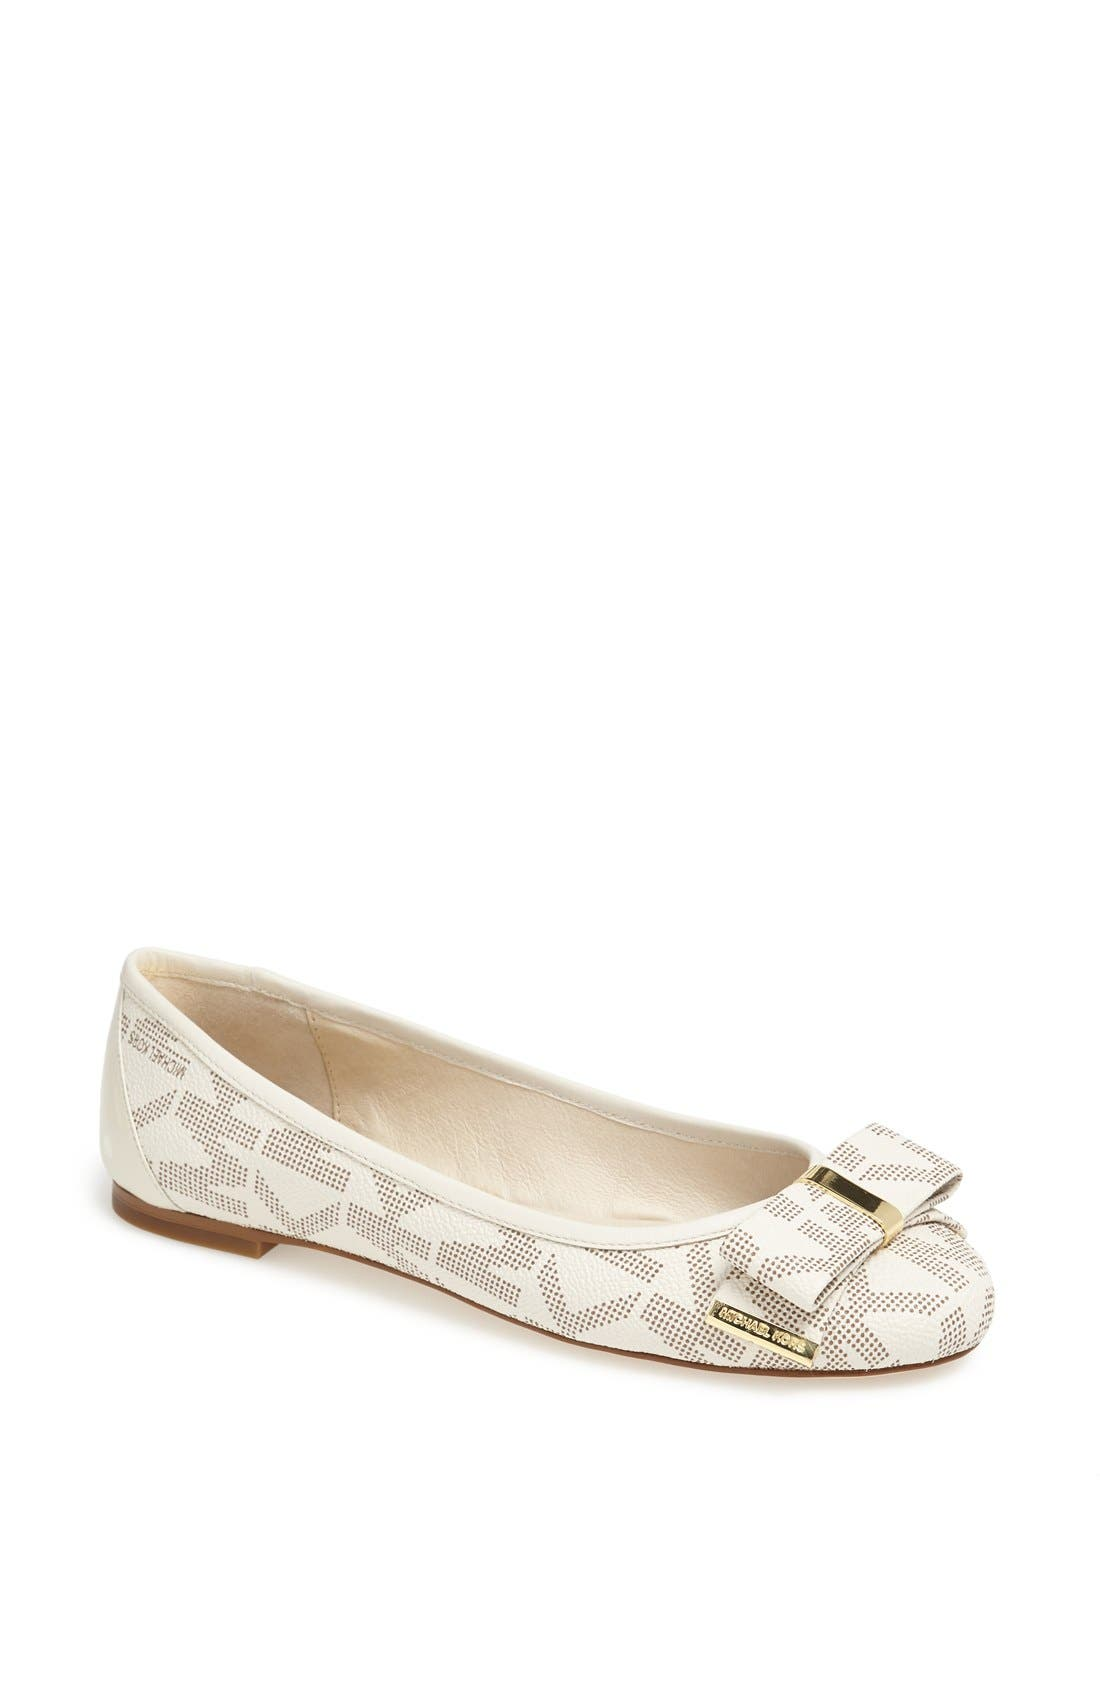 Alternate Image 1 Selected - MICHAEL Michael Kors 'Kiera' Leather Ballet Flat